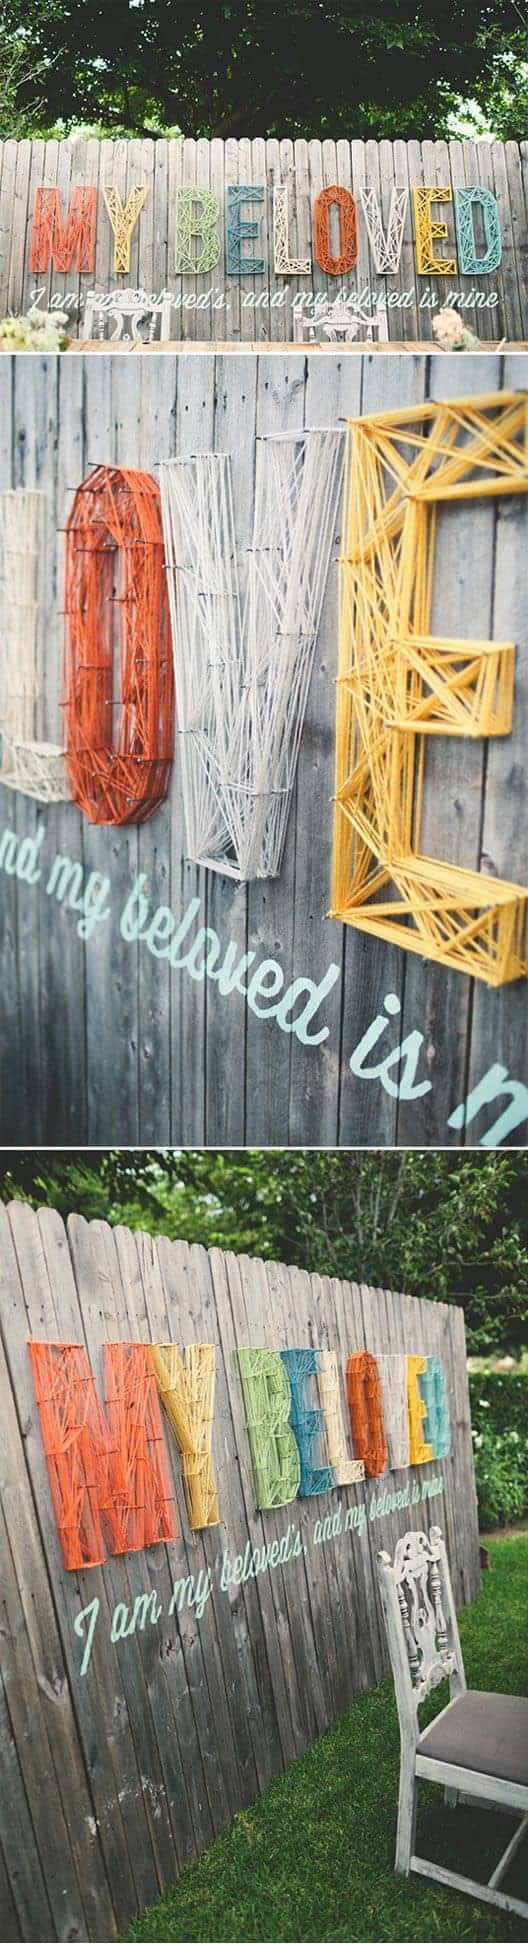 Garden Fence String Art Decor Fences